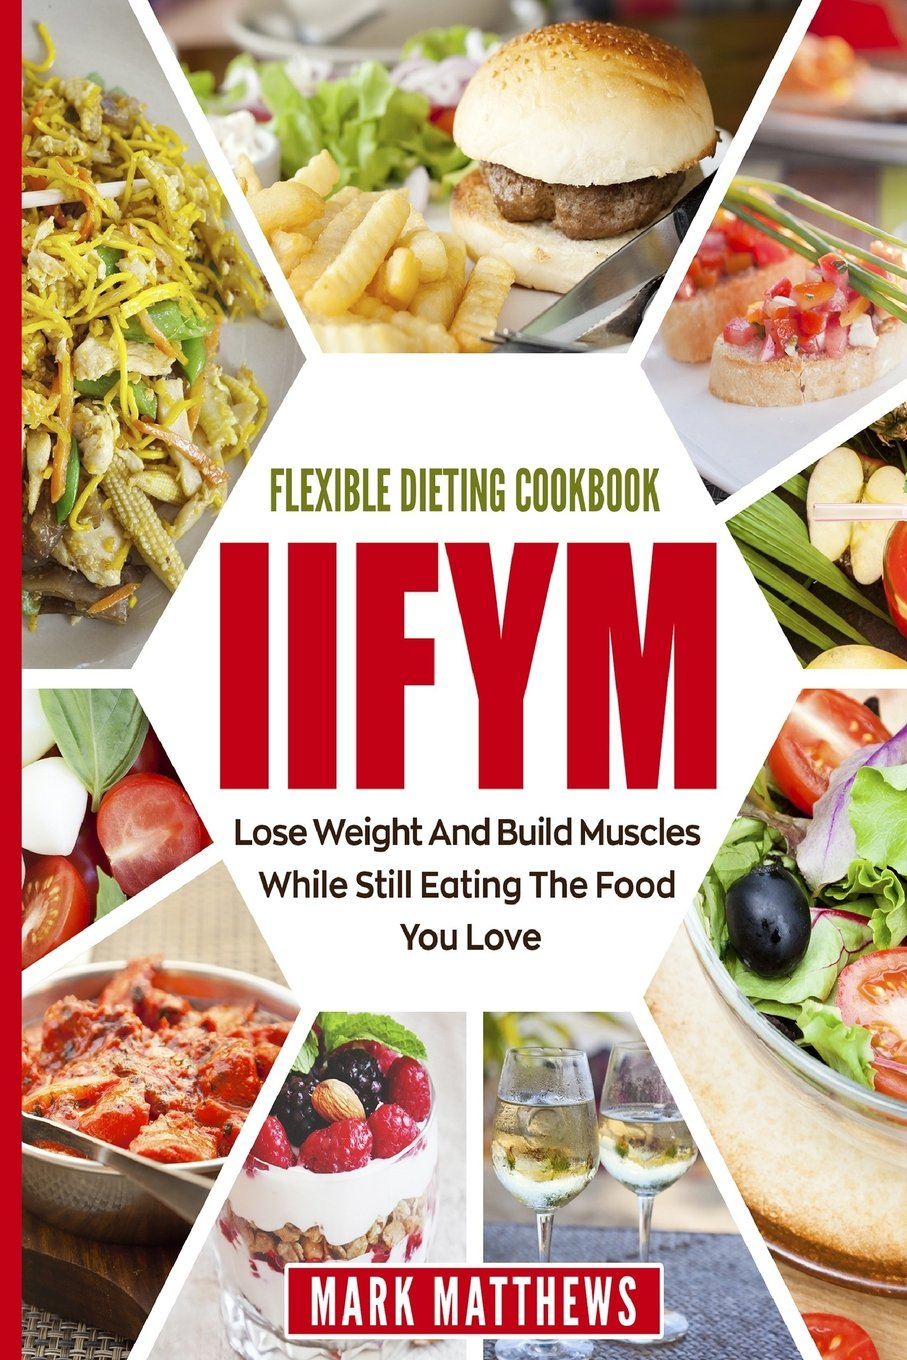 IIFYM & Flexible Dieting Cookbook: Lose Weight and Build Muscles While Still Eating The Food You Love (Macro Diet) PDF